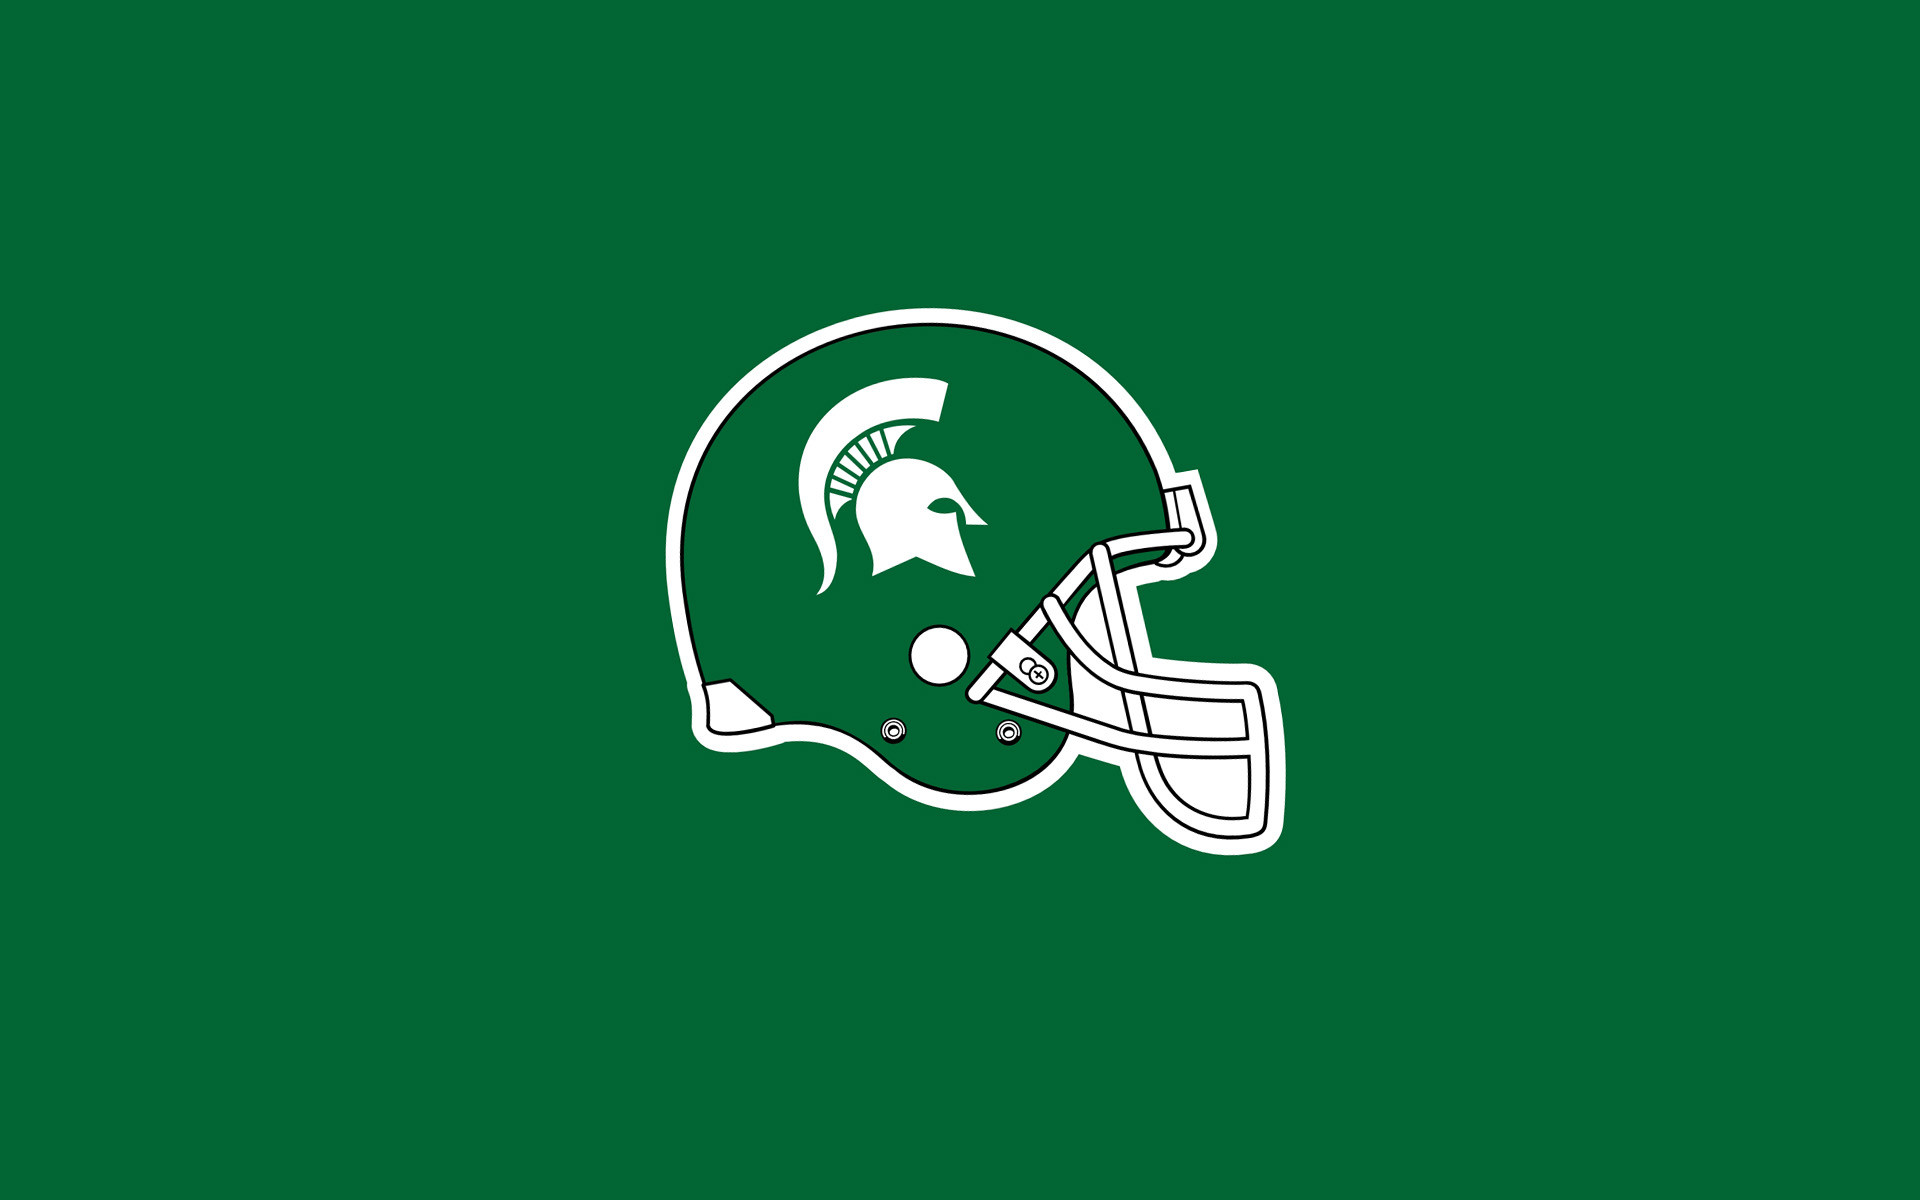 Michigan State University Wallpapers: Msu Spartan Wallpaper (62+ Images